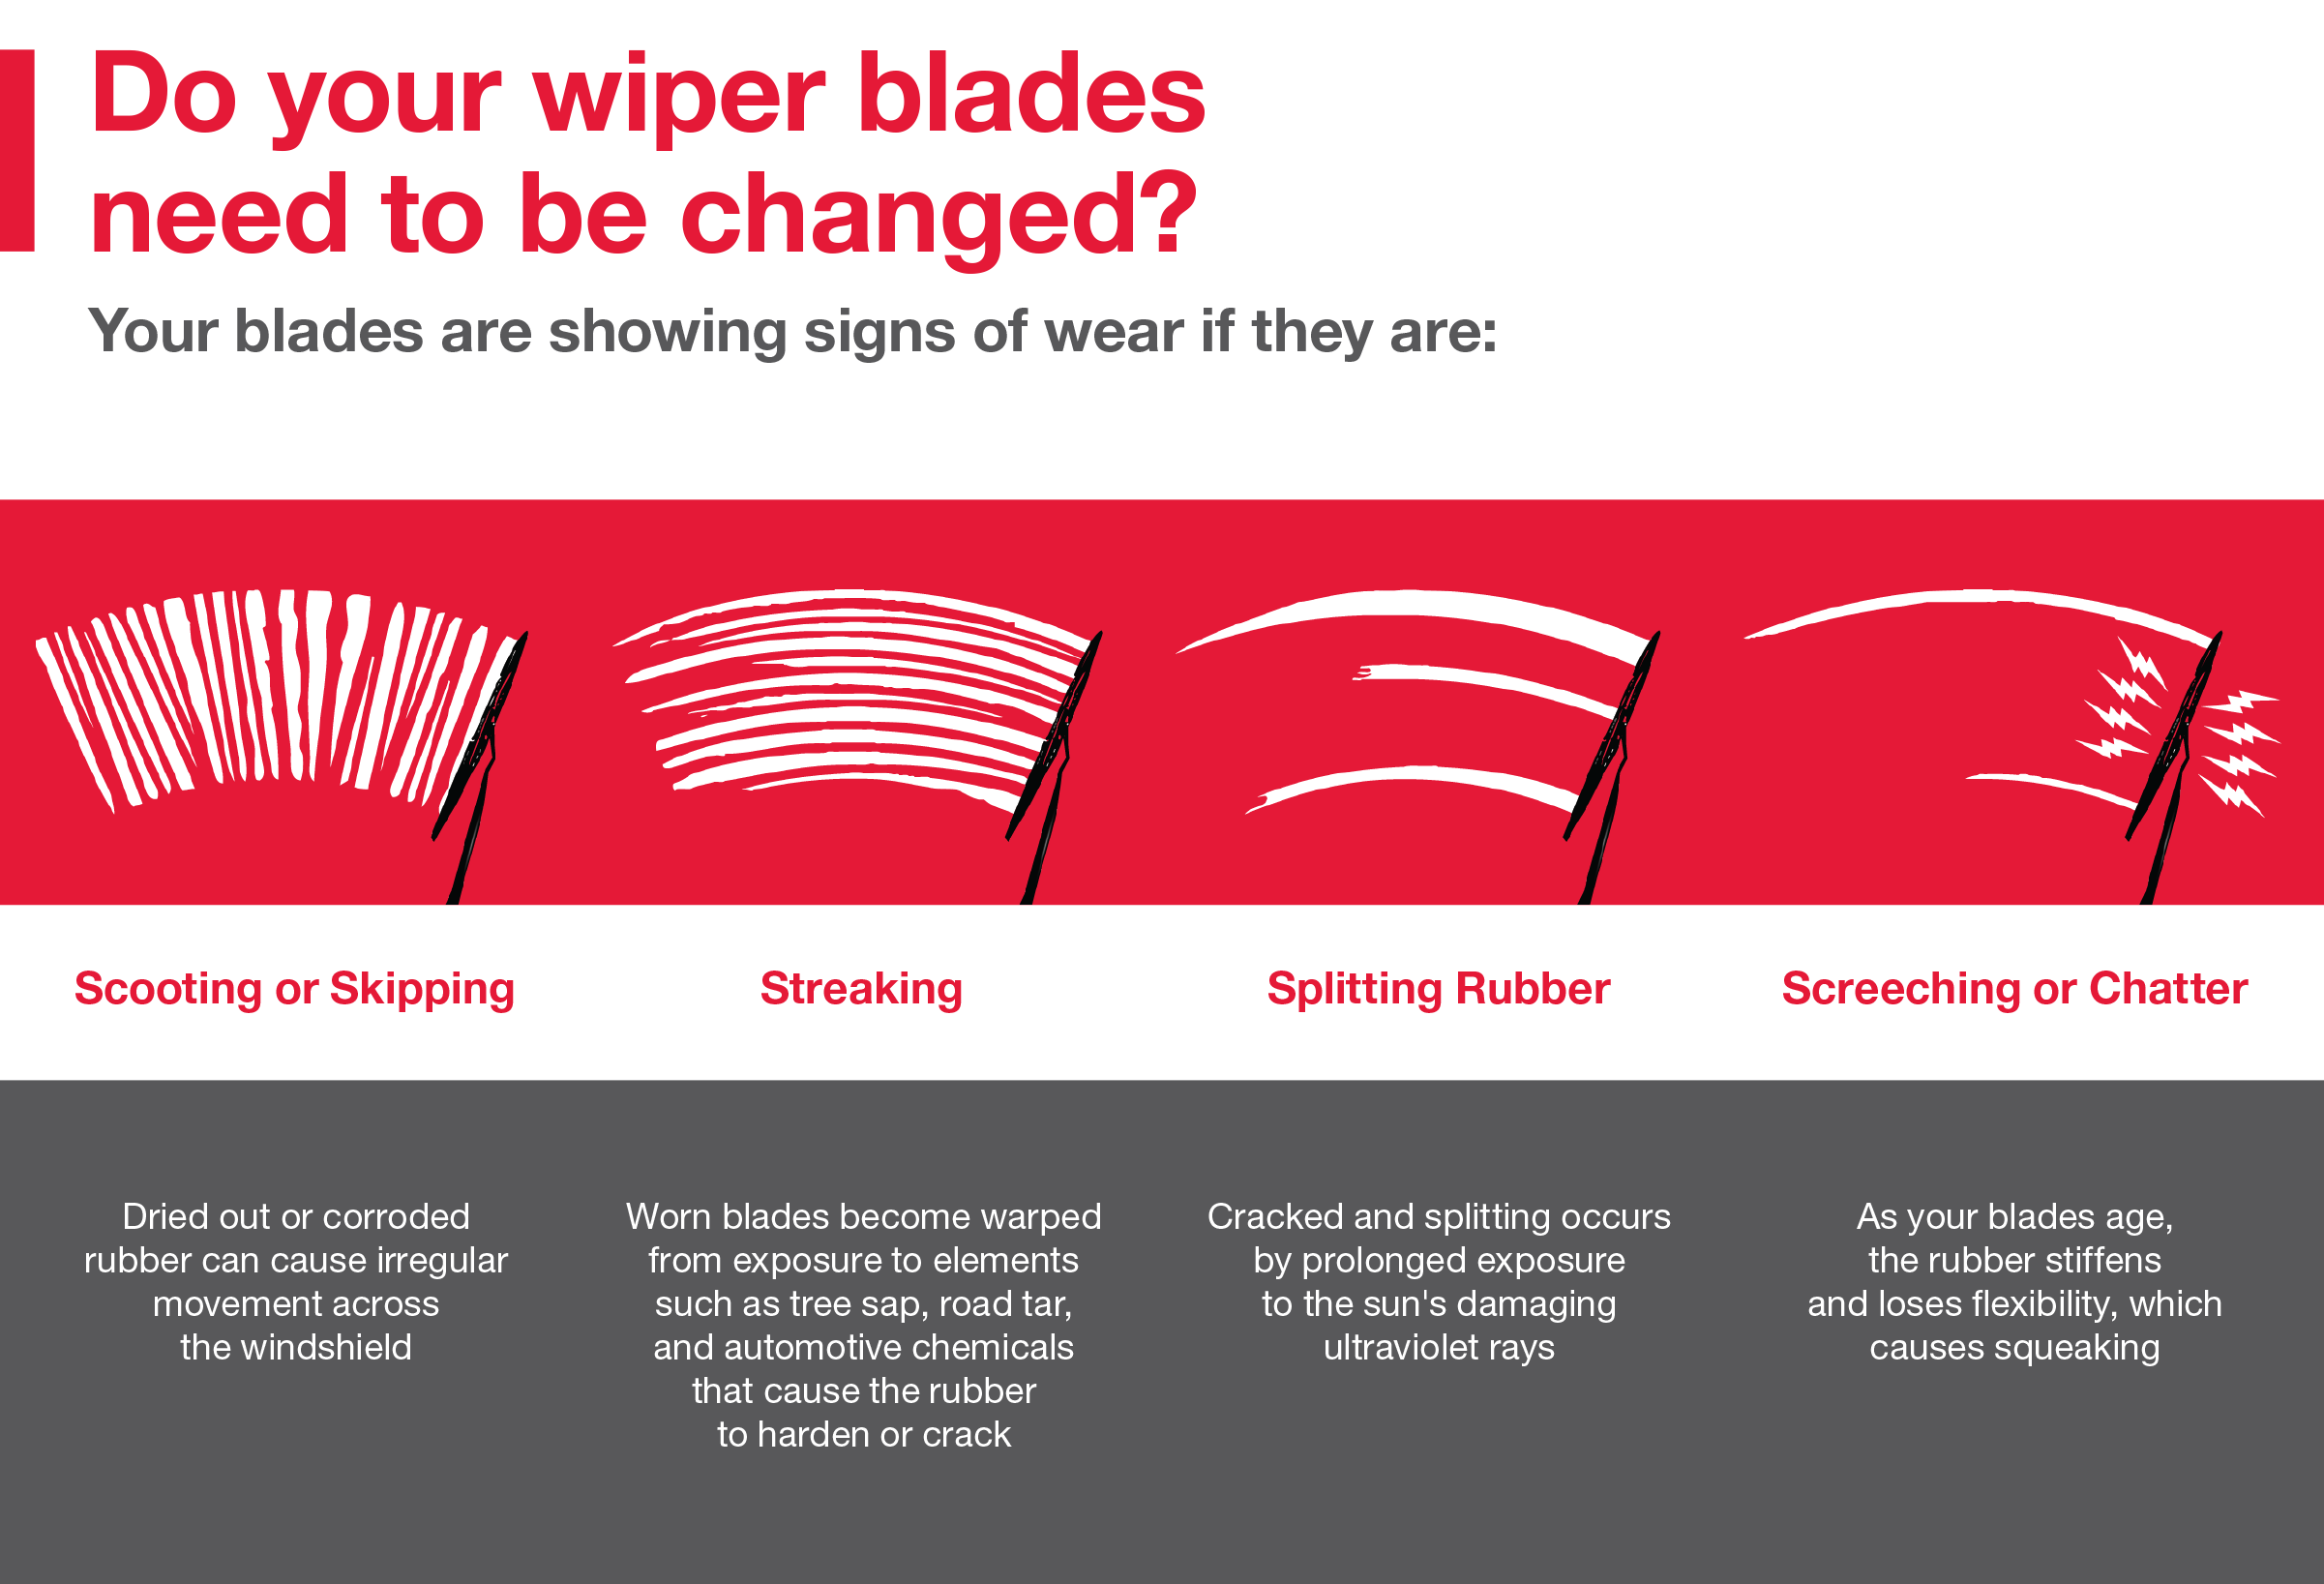 Do your wiper blades need to be changed? Call your local dealer for more info: (888) 551-7439